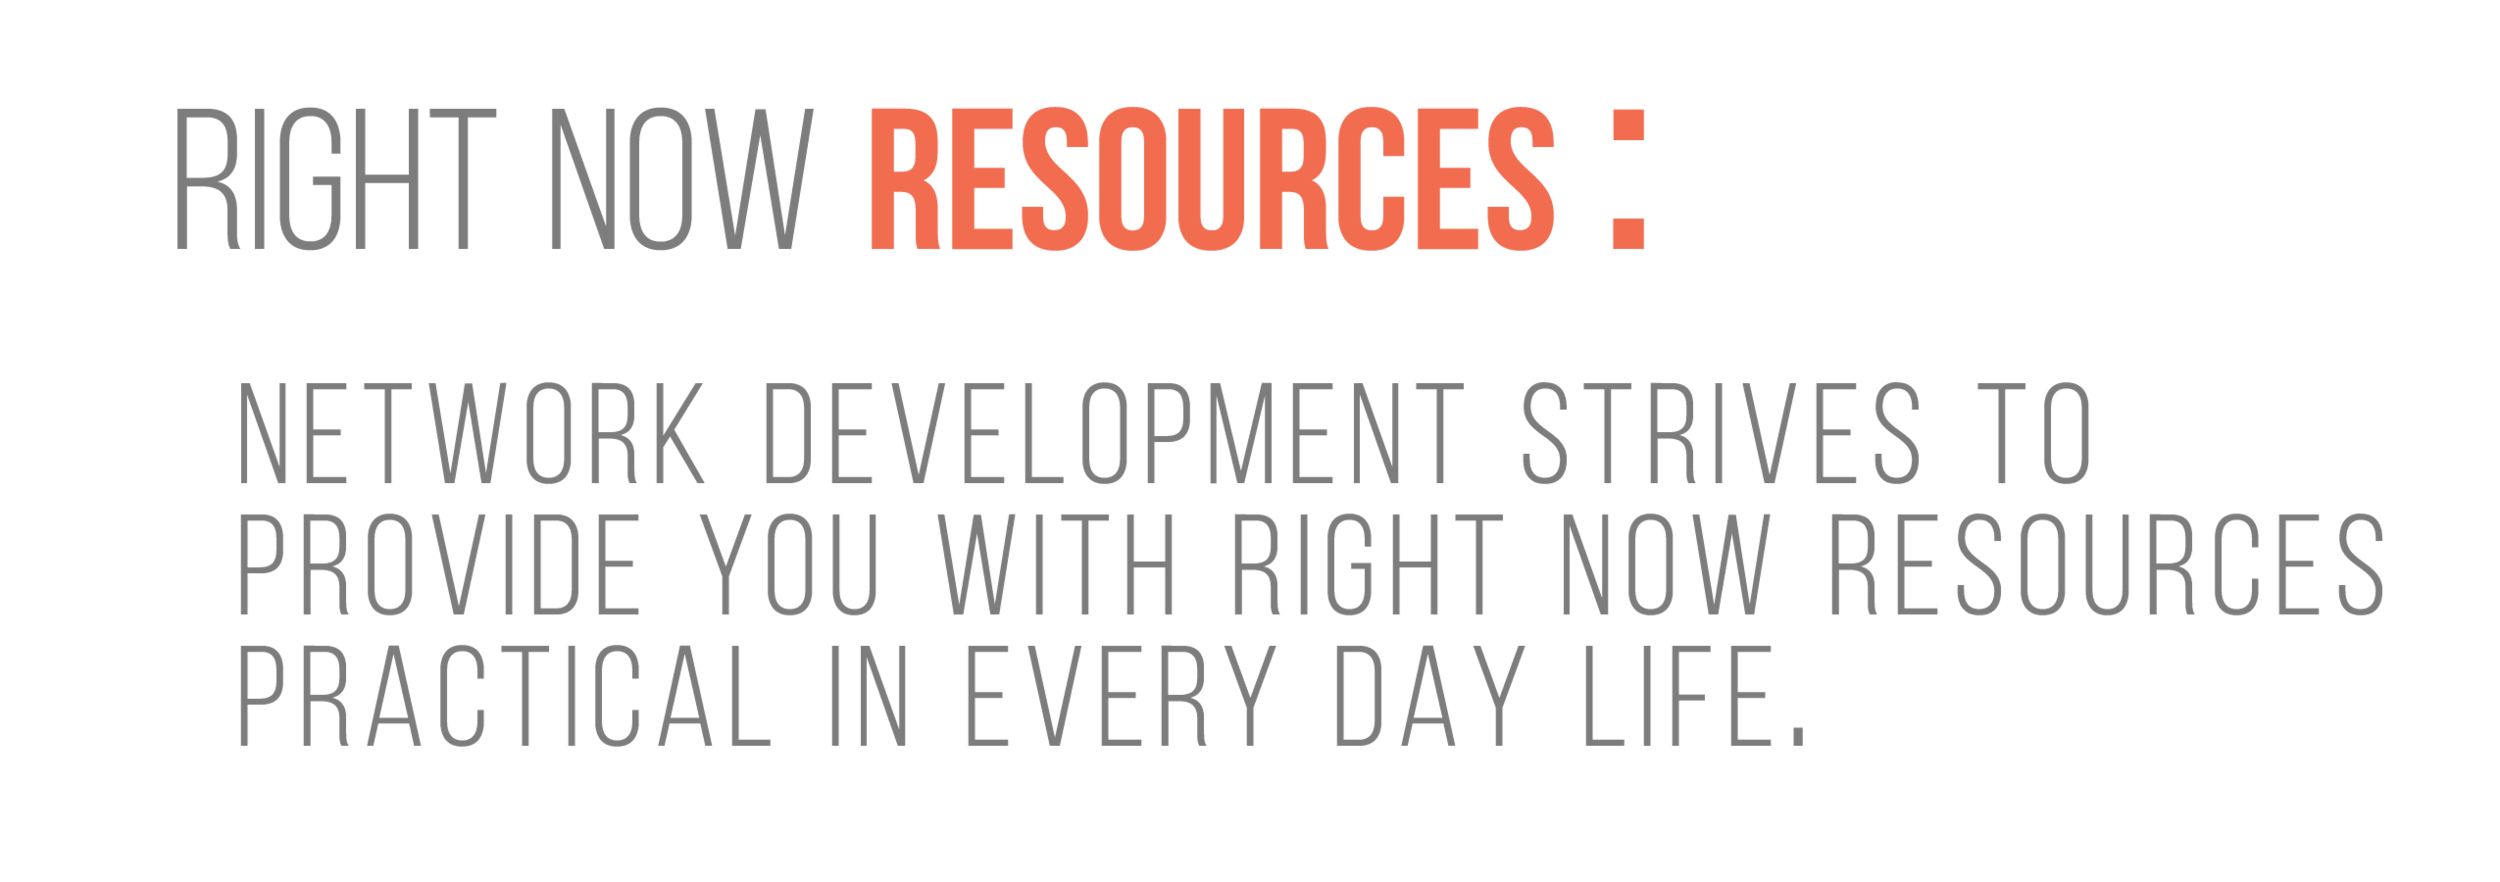 Quick Resources banner.png